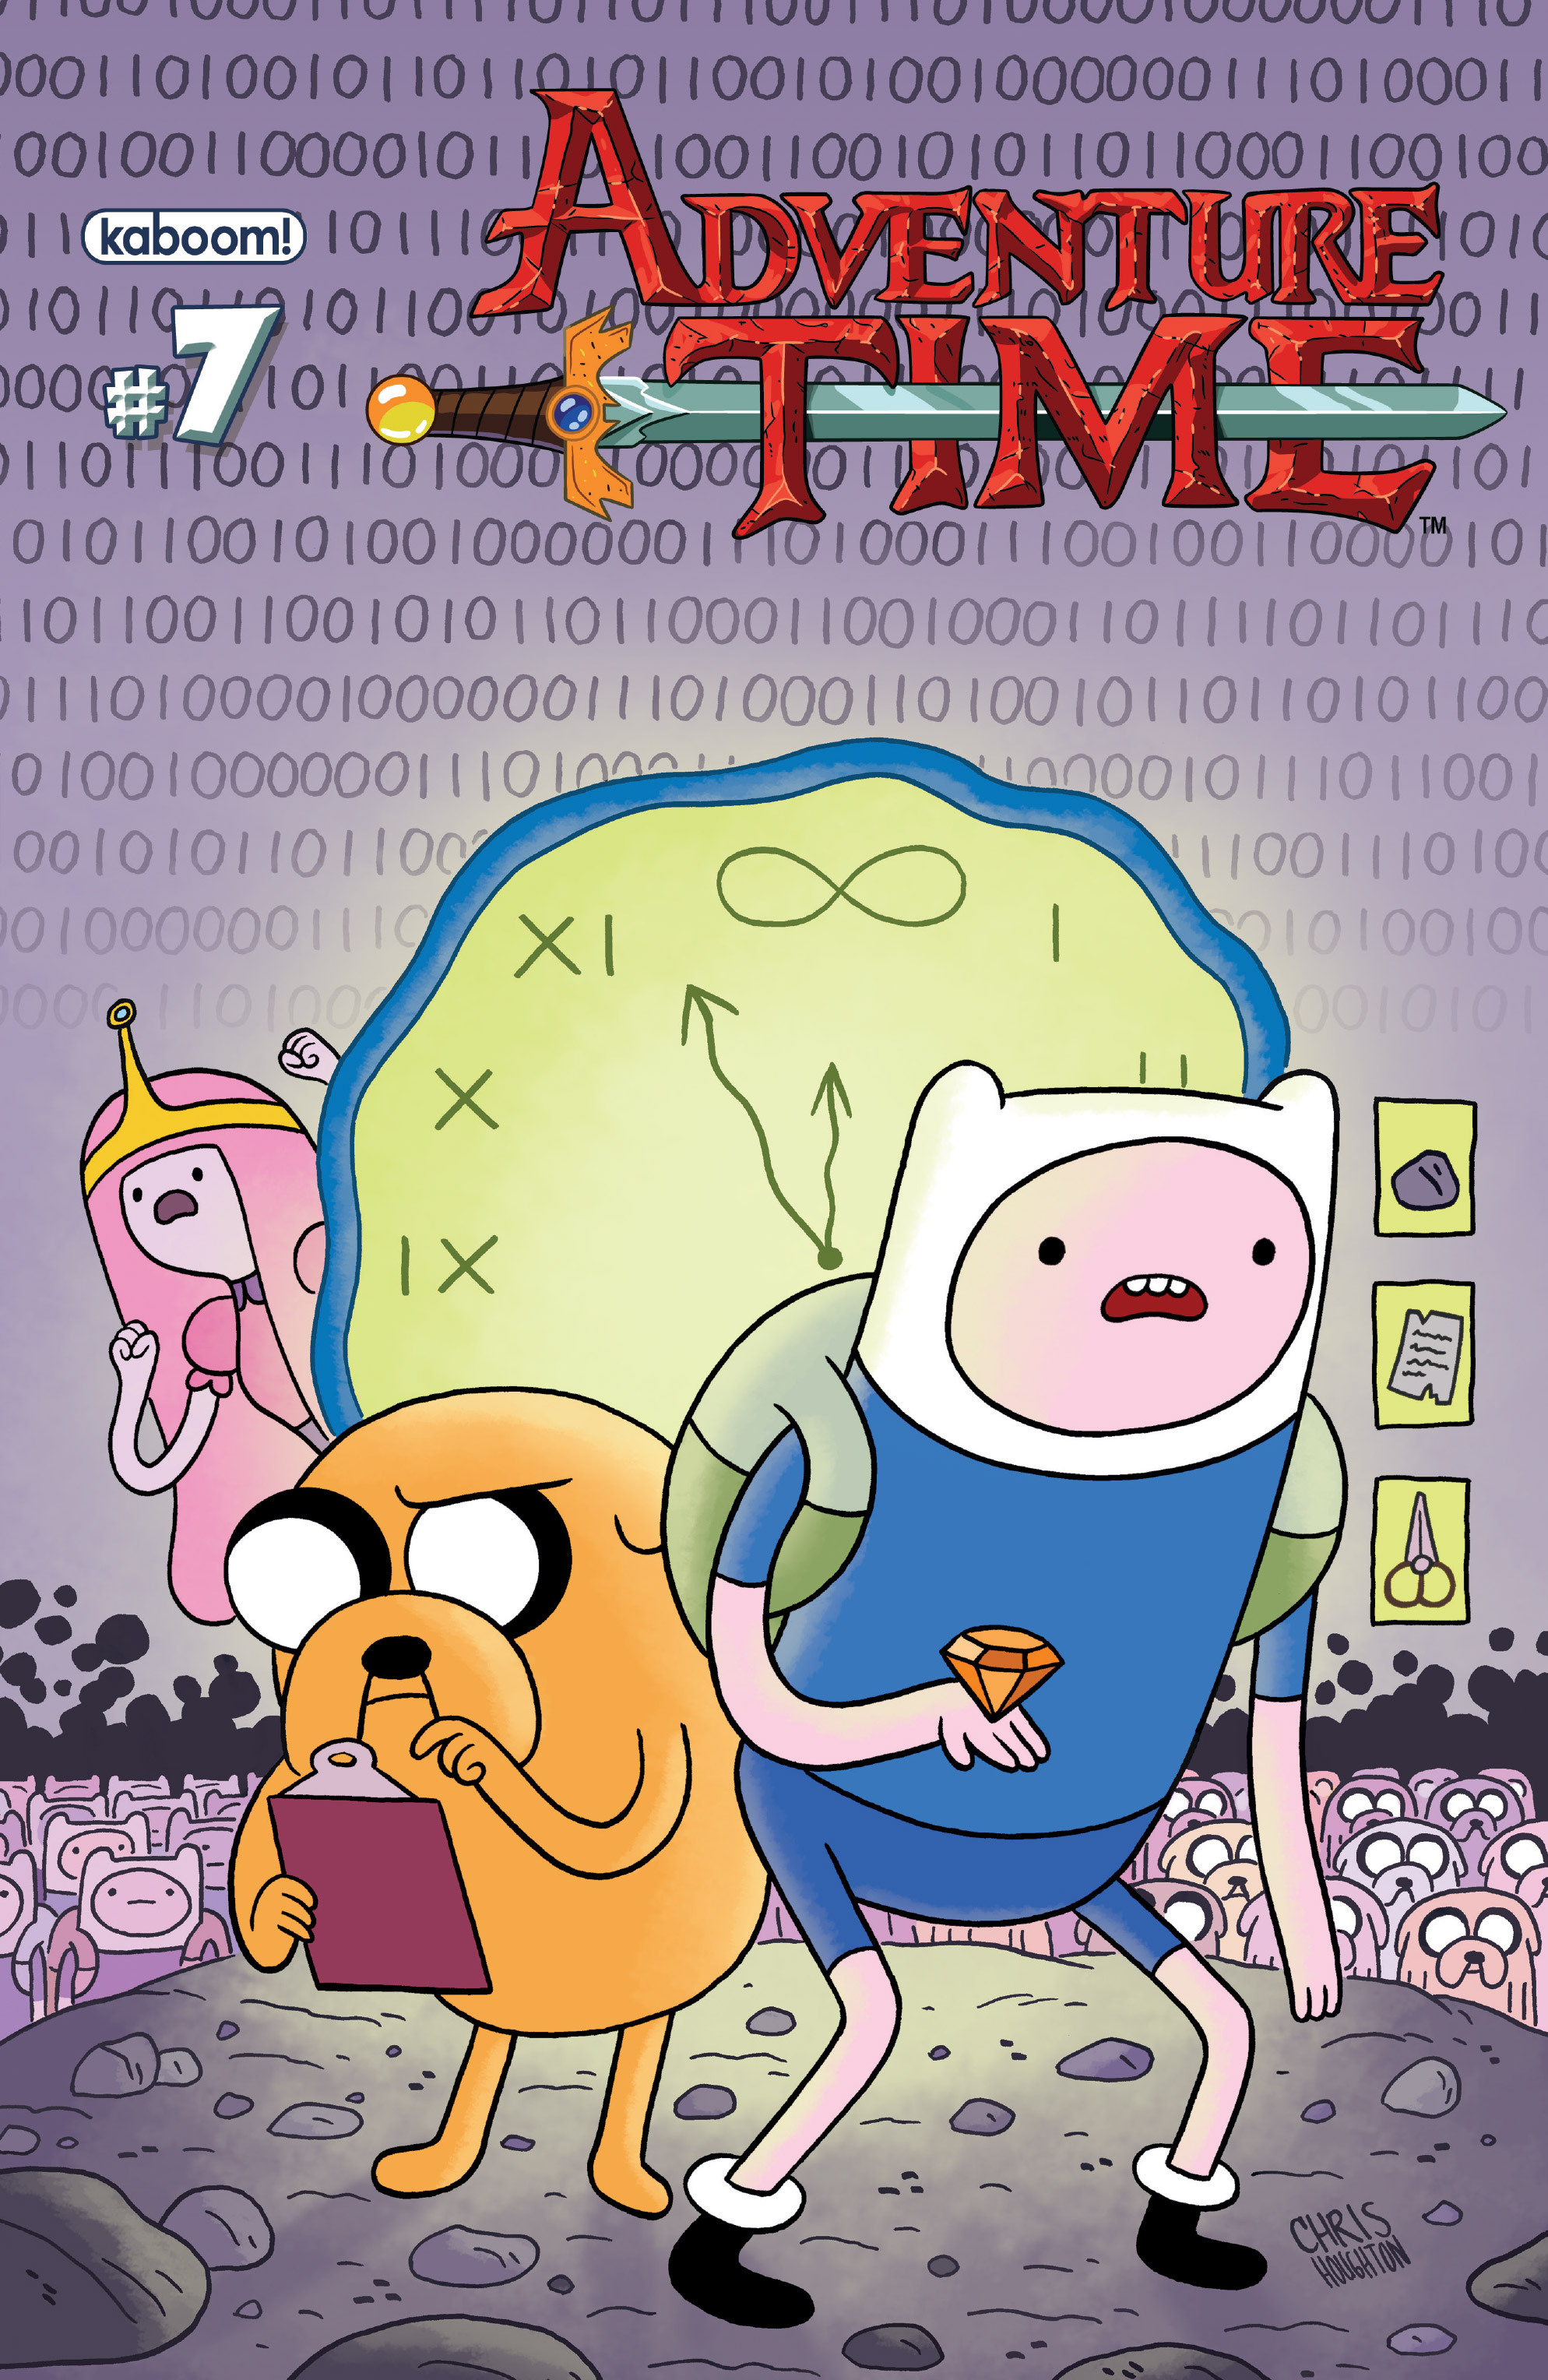 Read online Adventure Time comic -  Issue #7 - 1